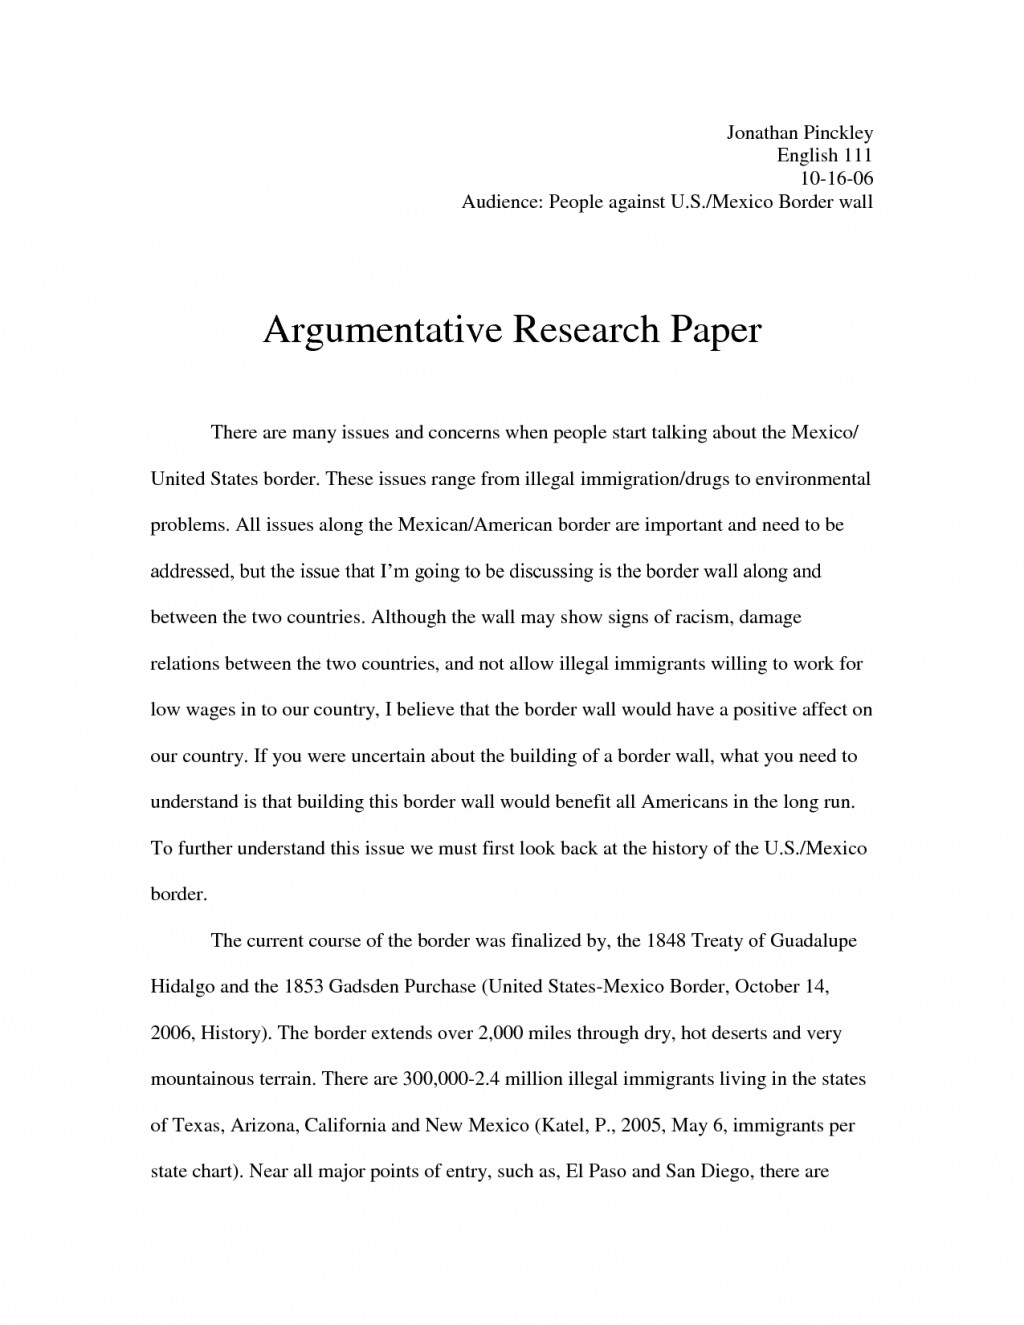 024 Interesting Topics For Argumentative Research Paper Uncategorized Debate20y Thesis High School Sentence Starters Outline Worksheet Archaicawful Easy Papers Large